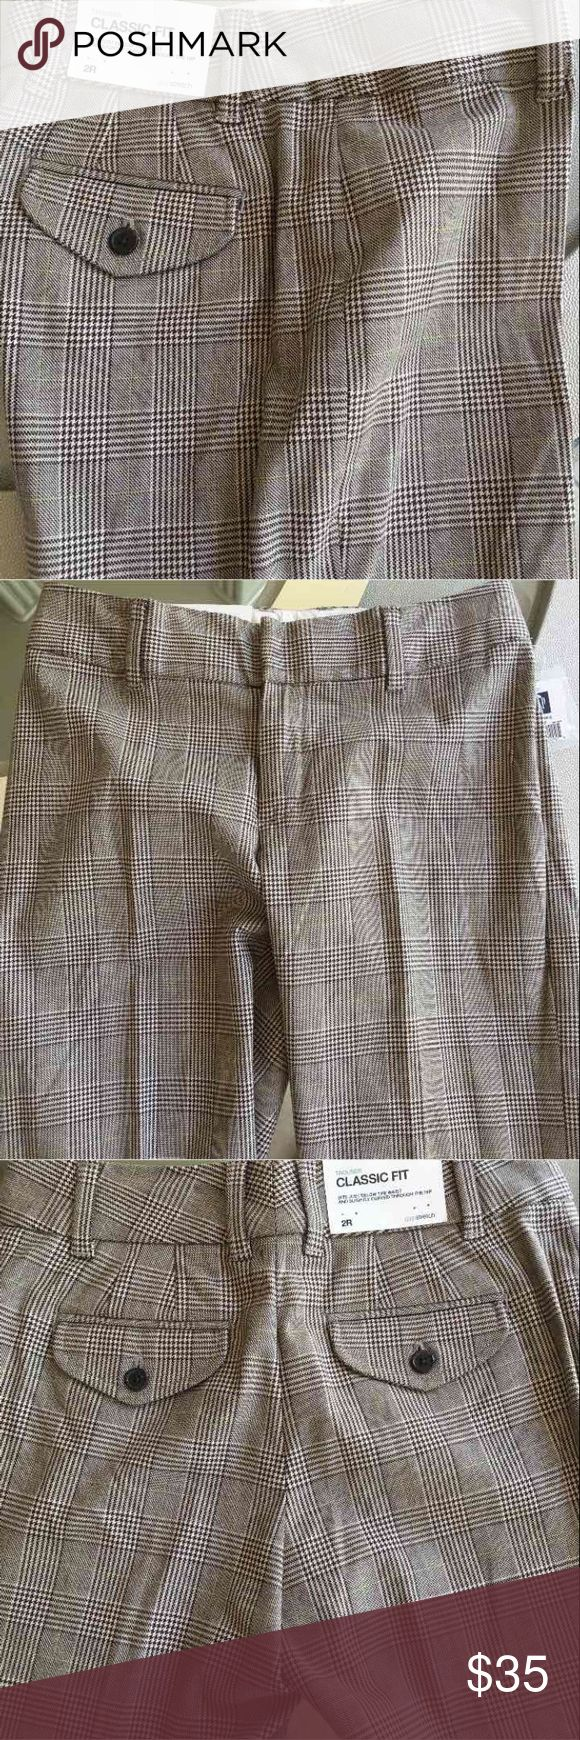 Gap trousers size 2R Classic fit. Brand new Pants Trousers